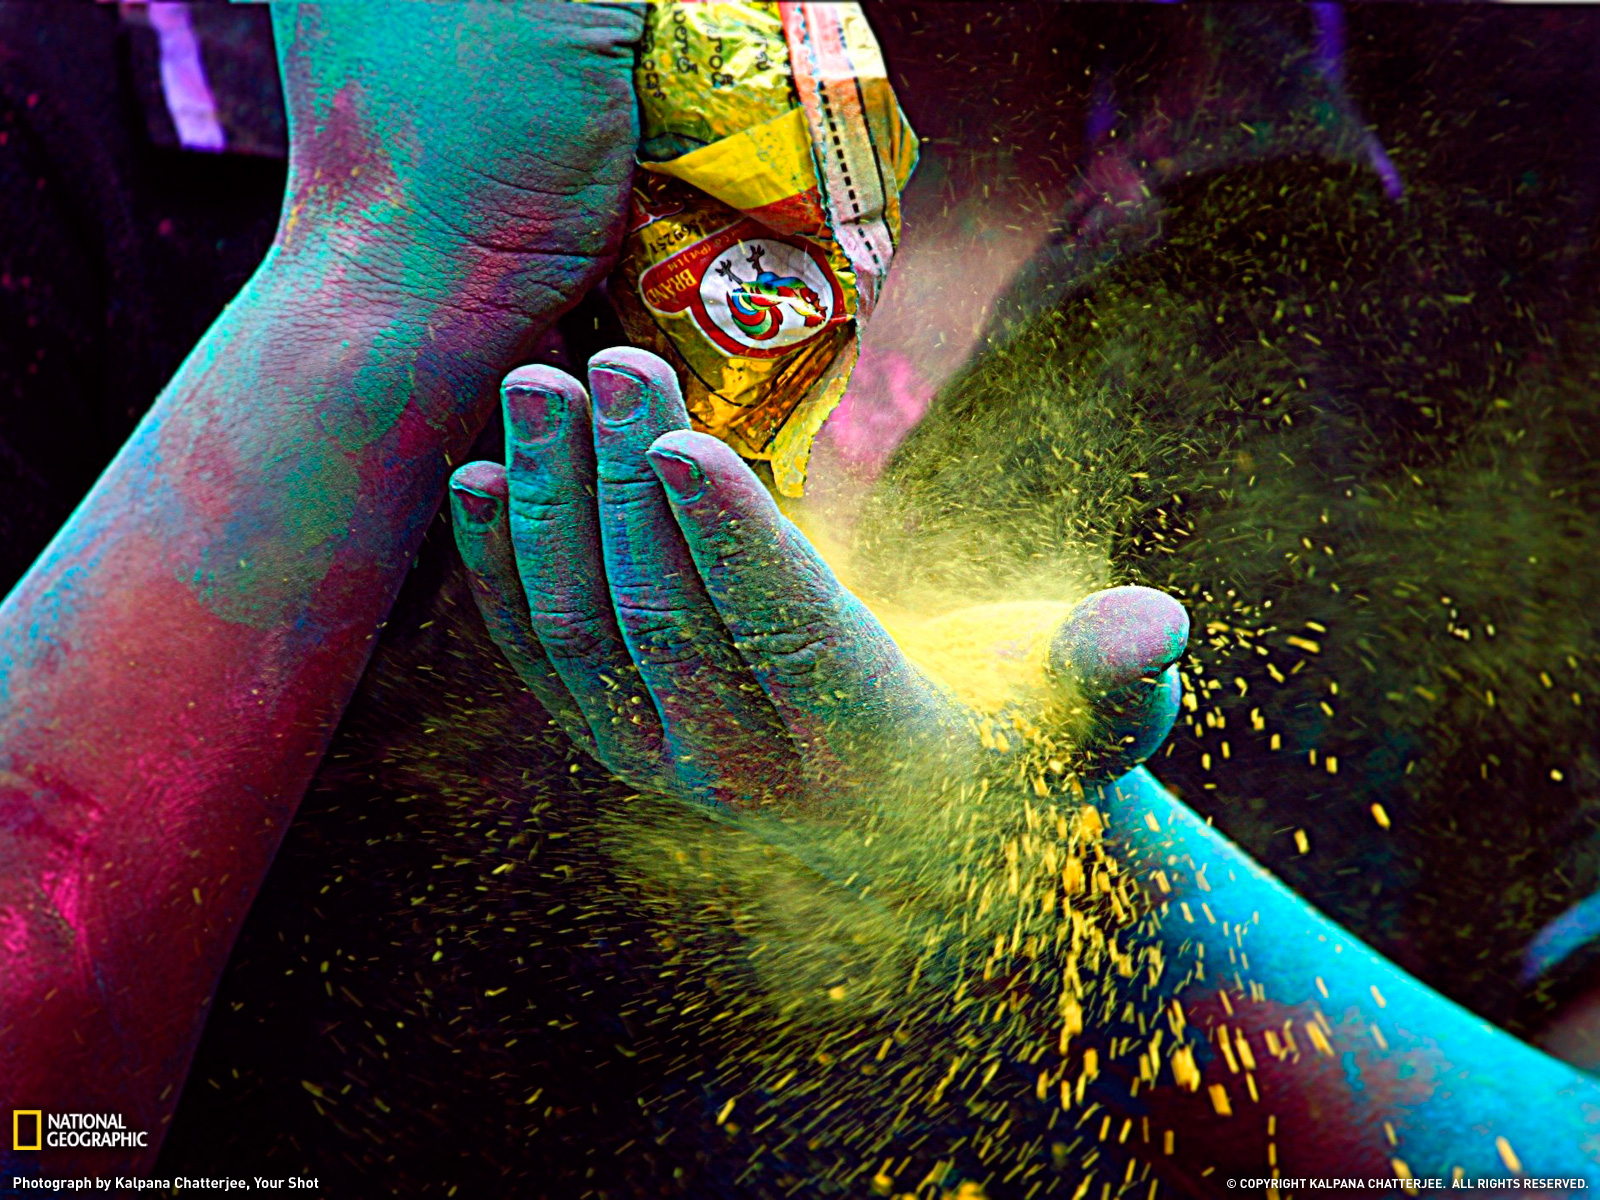 Colored Powder Photo Festival Wallpaper National Geographic Photo 1600x1200